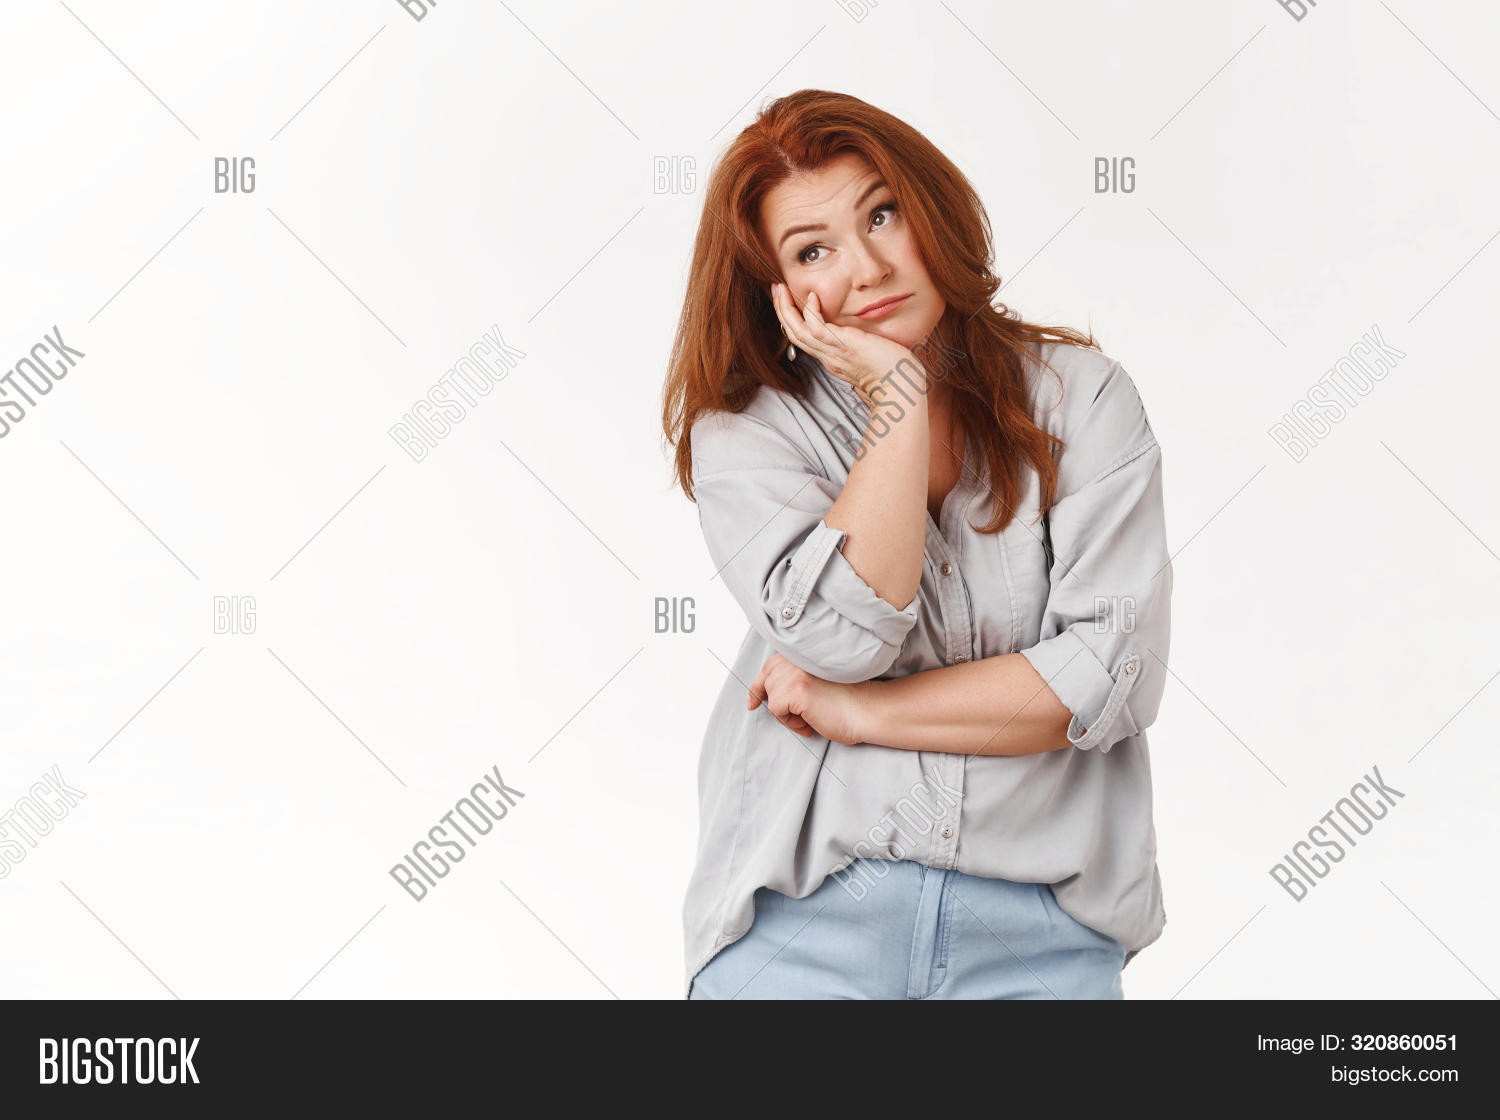 Bored redhead middle-aged housewife smirking regret boredom lean palm unamused moody look away smirking sighing boring day nothing do pondering what watch entertain lift spirit